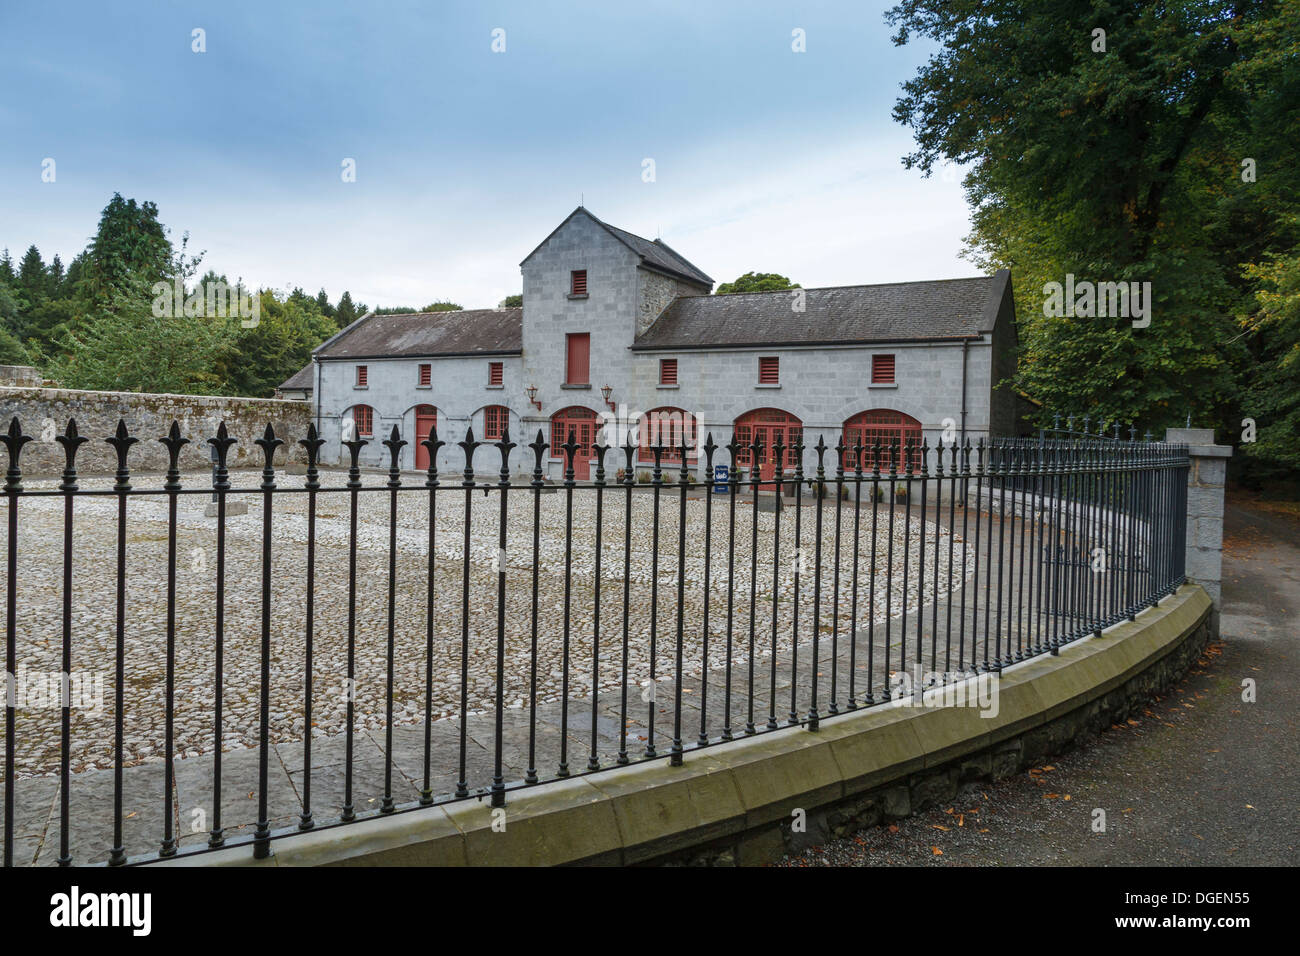 The courtyard and stables at Coole House, Galway, Ireland - Stock Image